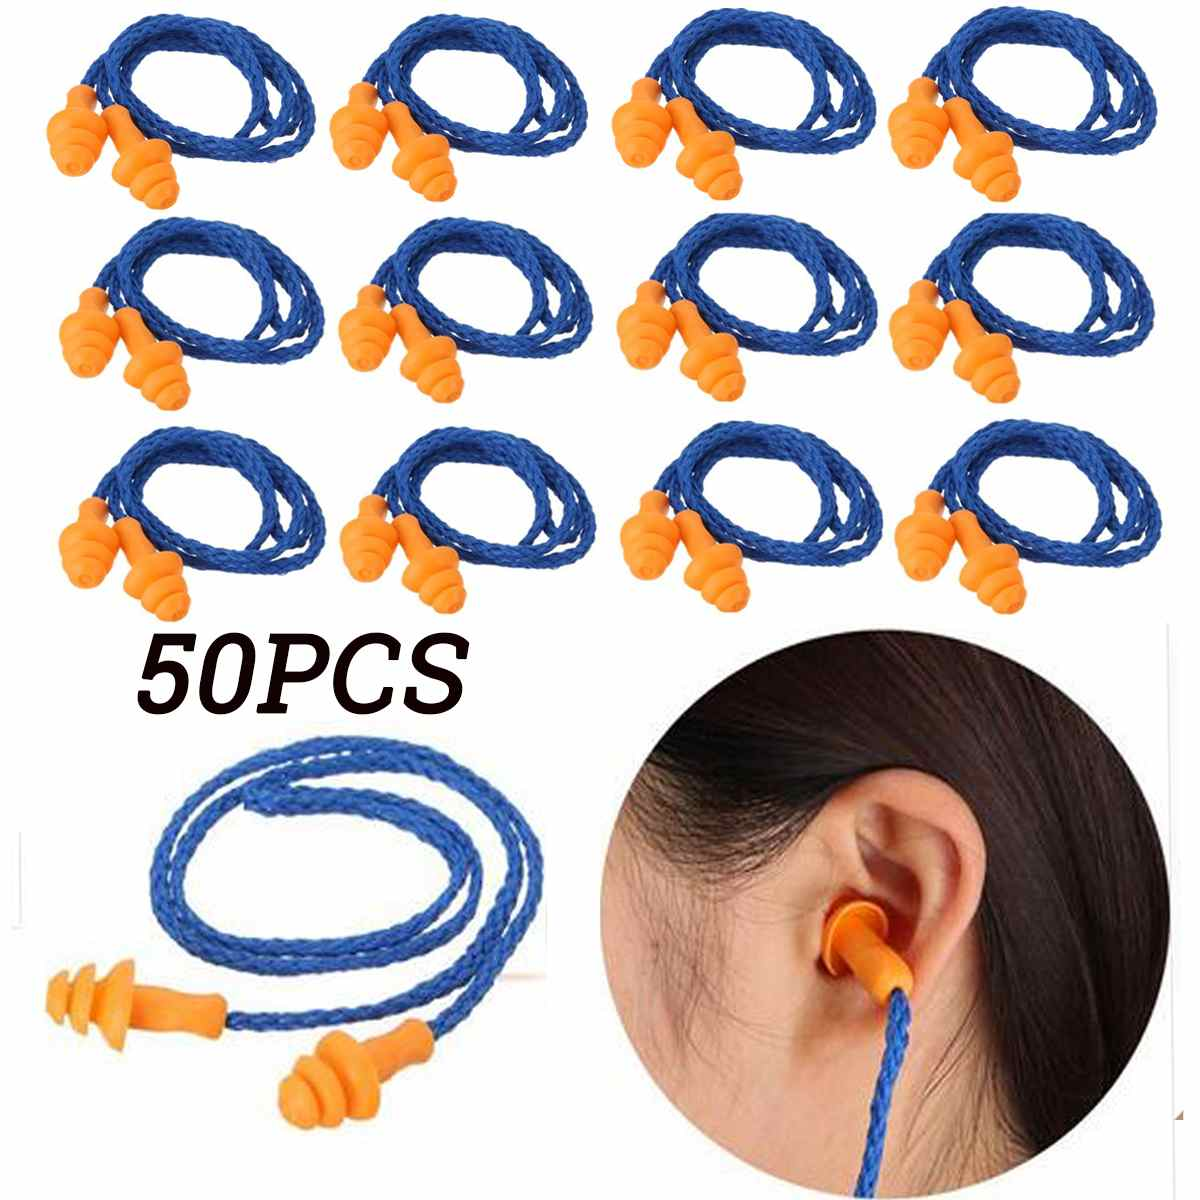 50Pcs Soft Silicone Corded Ear Plugs Ears Protector Reusable Snore Sleep Hearing Protection Noise Reduction Earplugs Earmuff